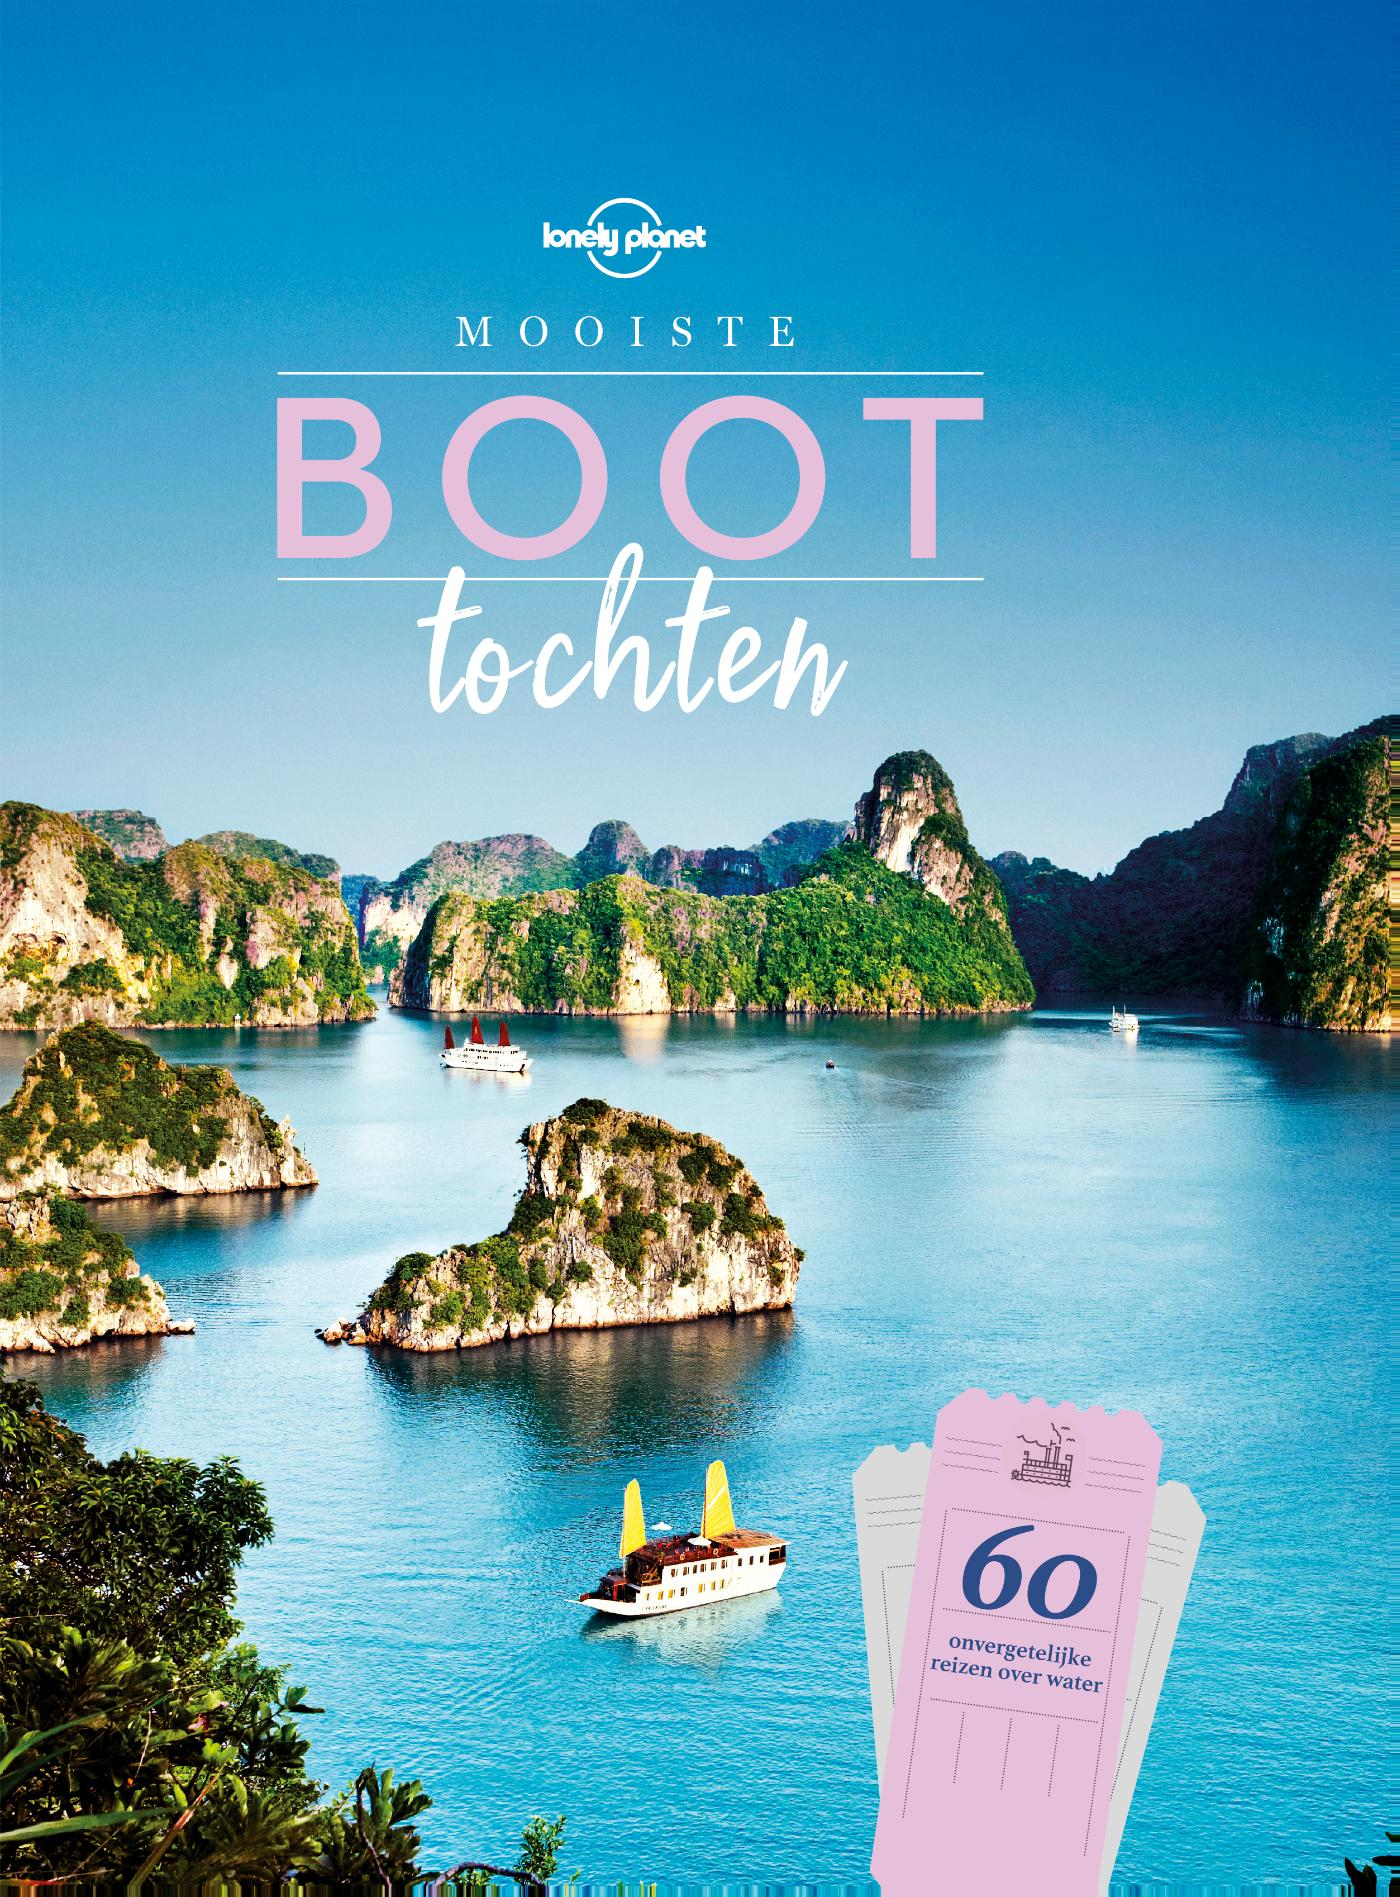 Lonely Planet: Mooiste boottochten